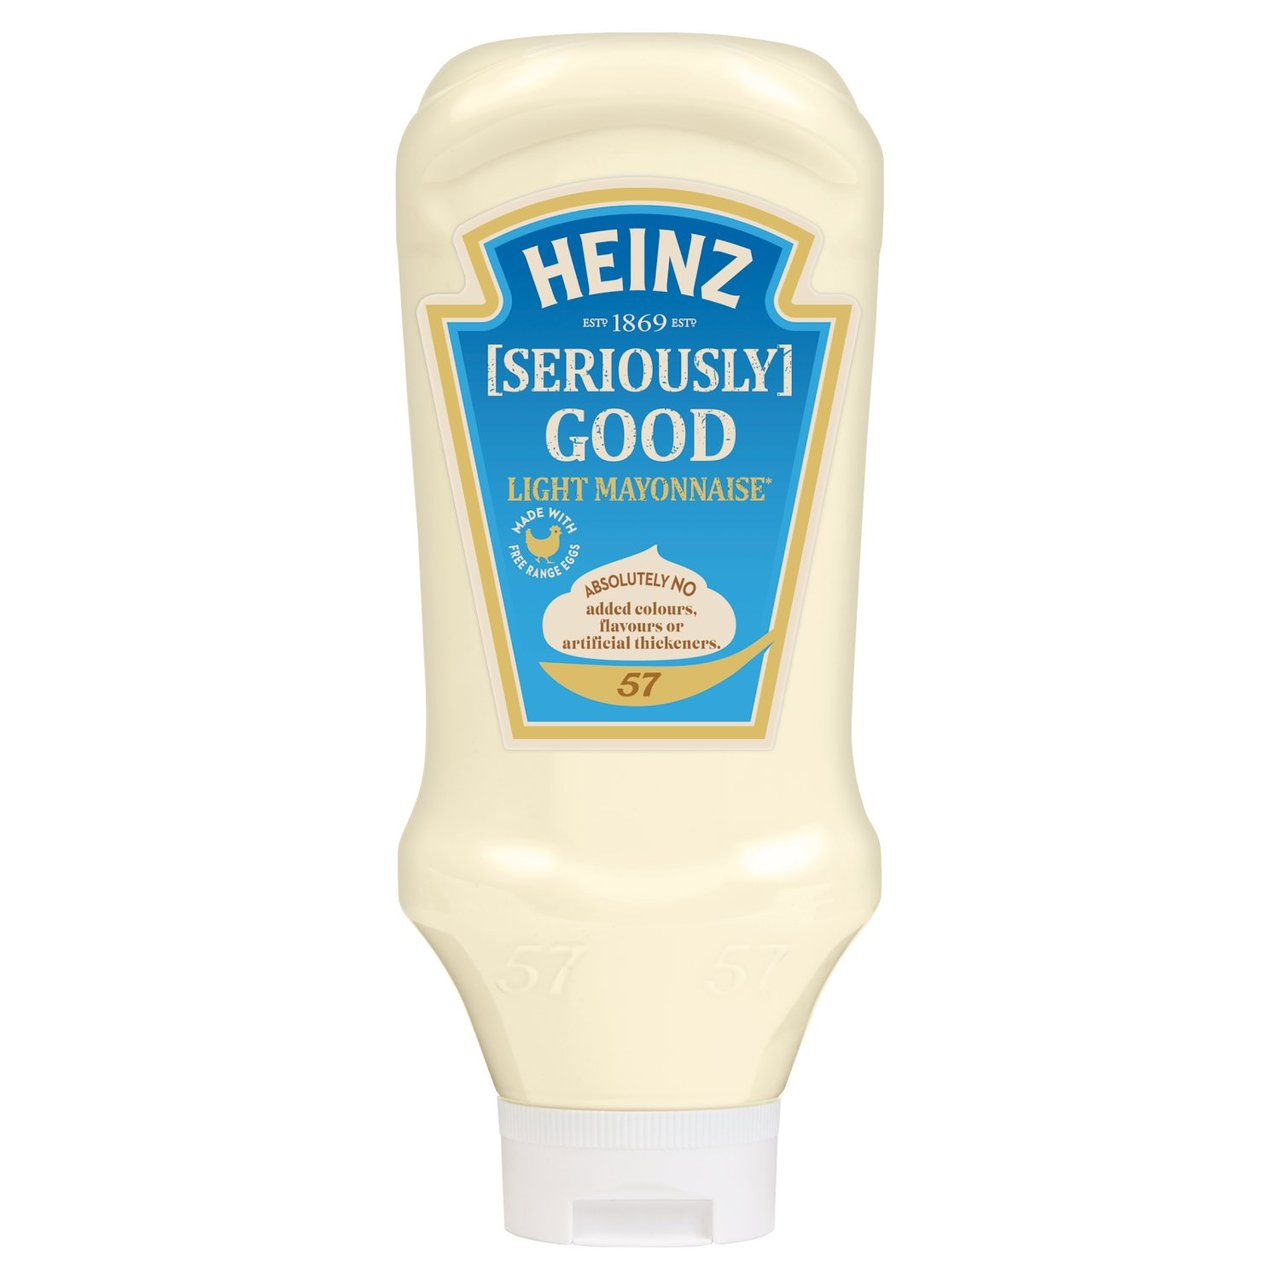 Heinz Mayonnaise Light 800ml Top Down image